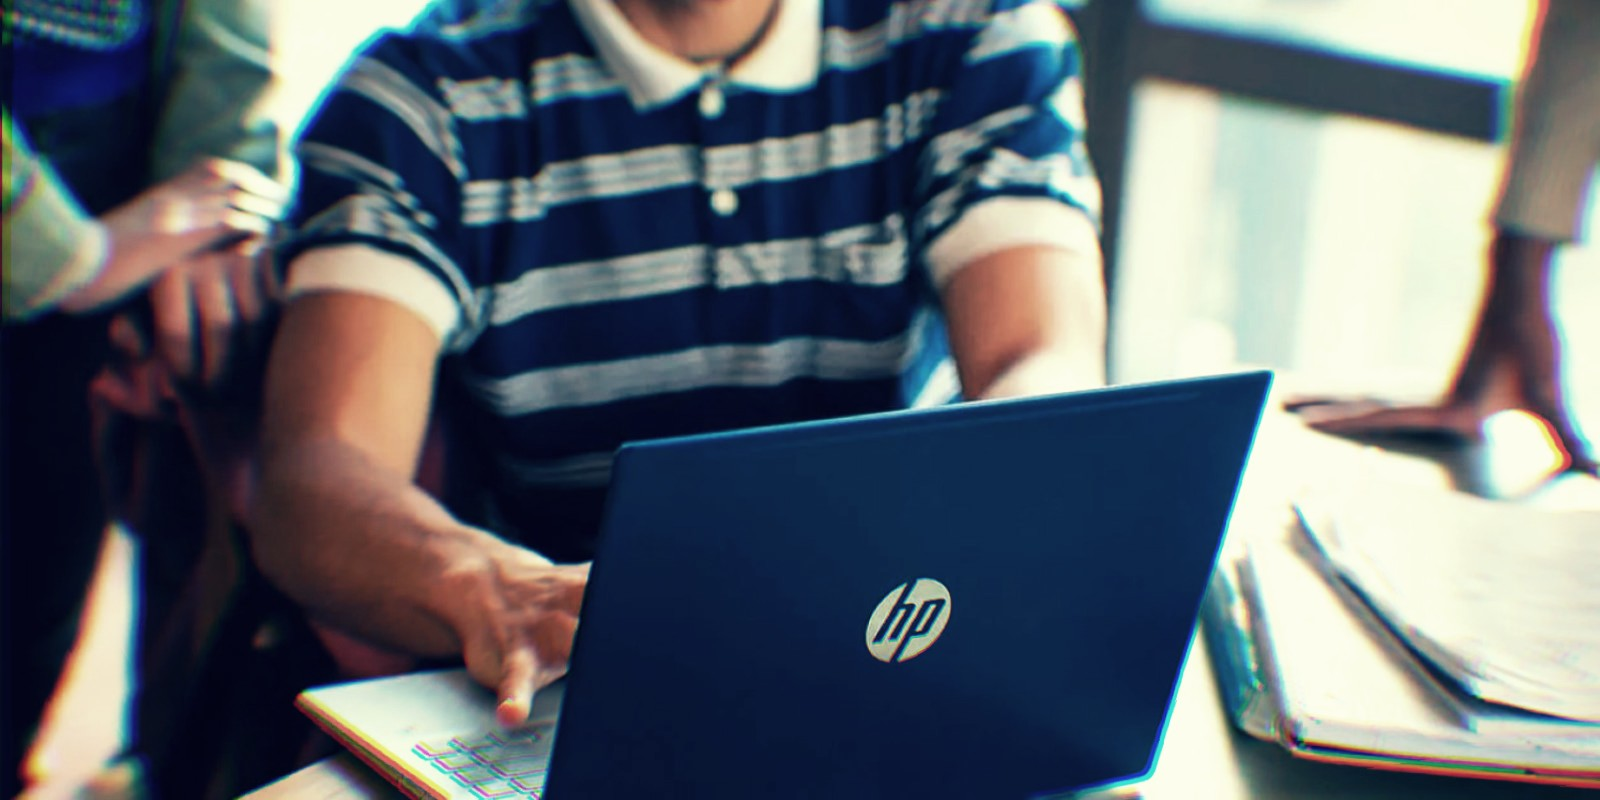 HP Device Manager backdoor lets attackers take over Windows systems